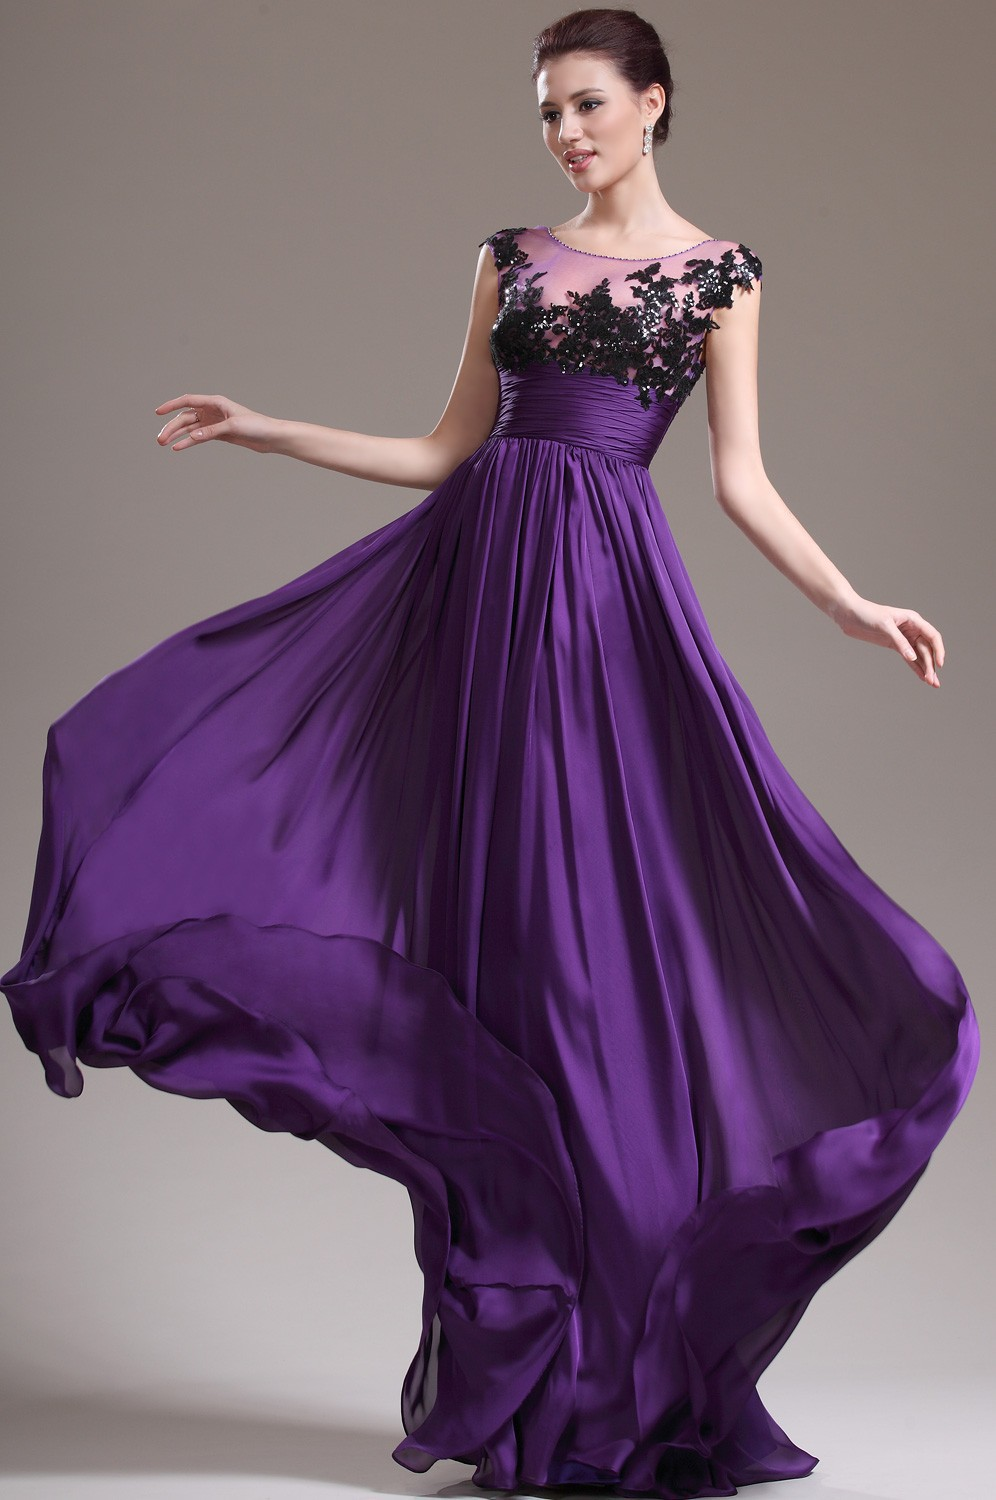 Black and purple evening dresses